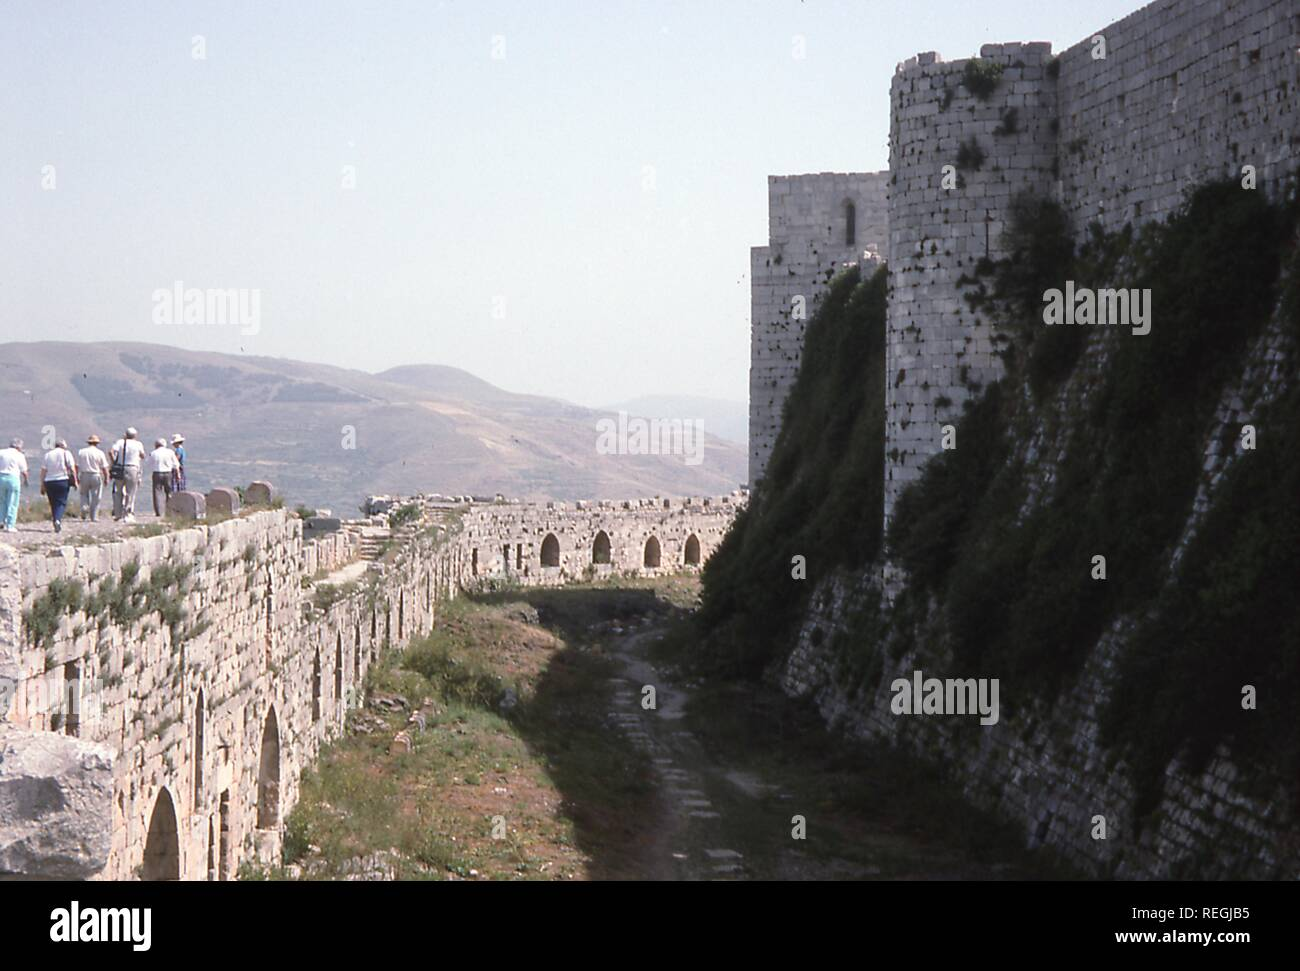 Scene of Western tourists walking the perimeter ramparts at the medieval fortress of Qalaat al-Madiq, Syria, June, 1994. () - Stock Image